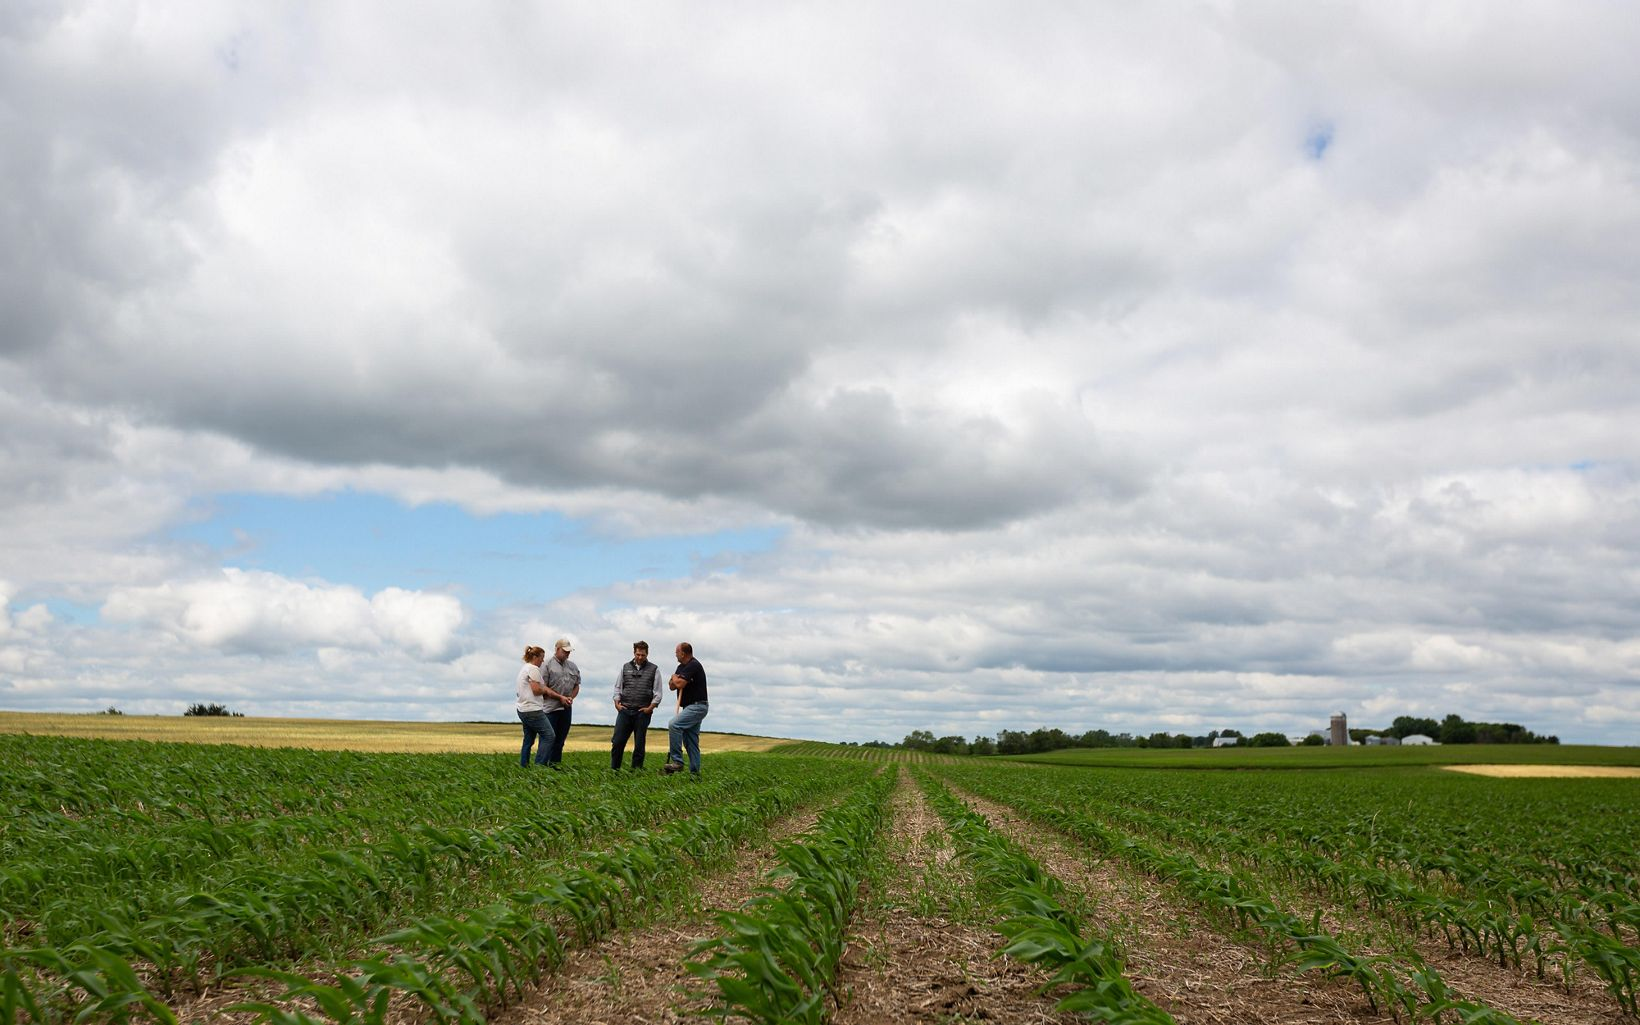 Four people standing in a cover-cropped farm field.